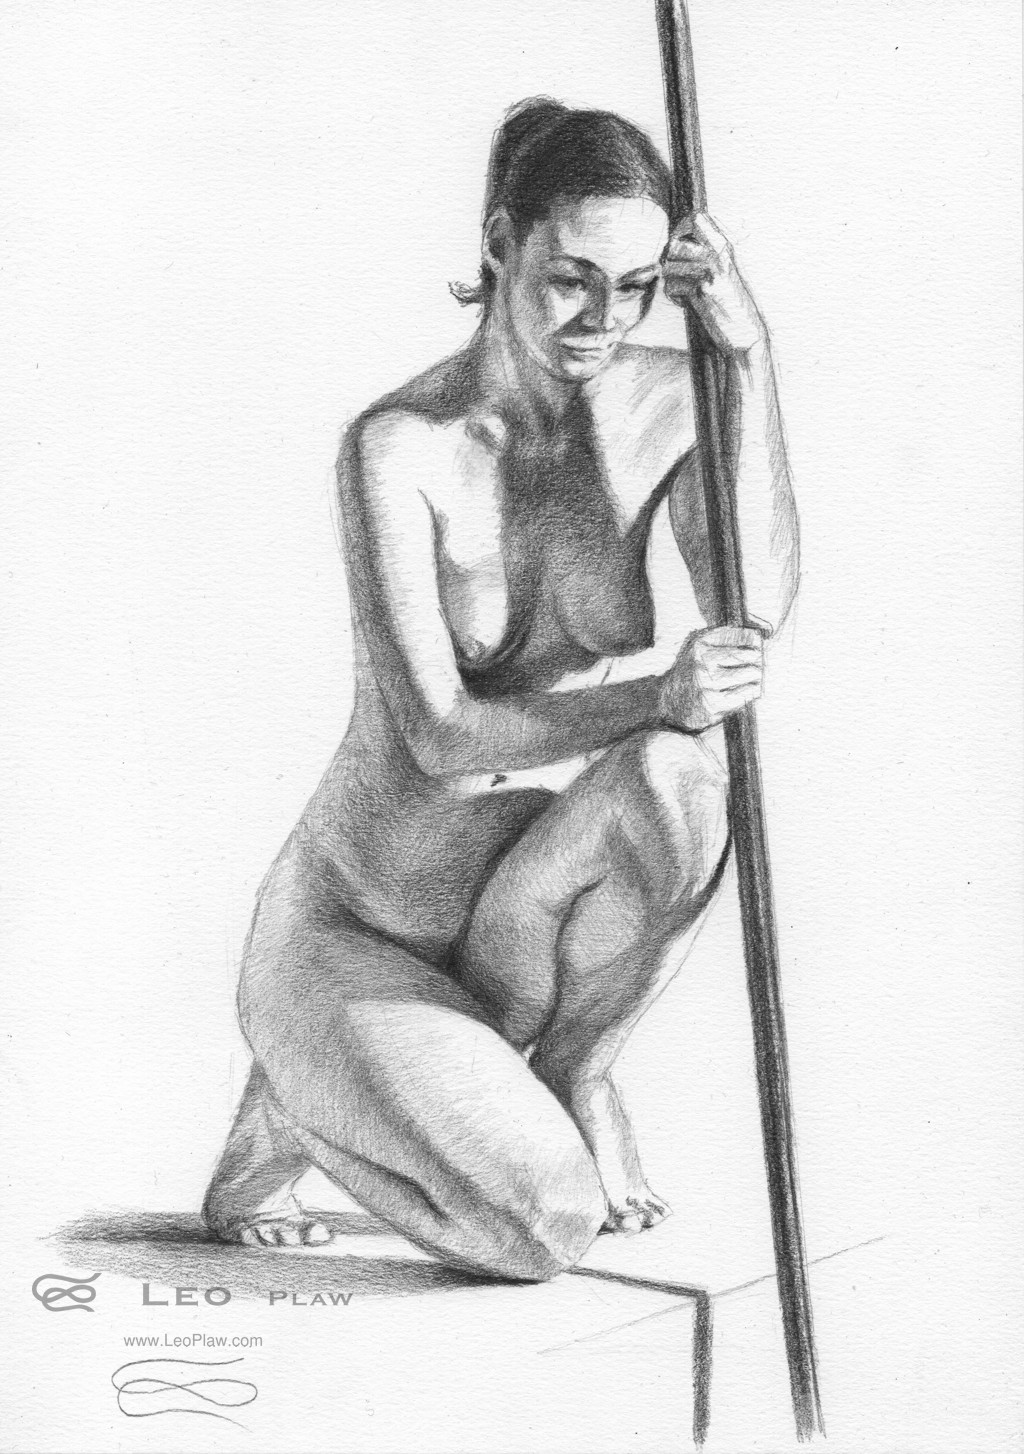 """Figure 40 - Drawing"", Leo Plaw, 21 x 30cm, graphite pencil on paper 300gsm"